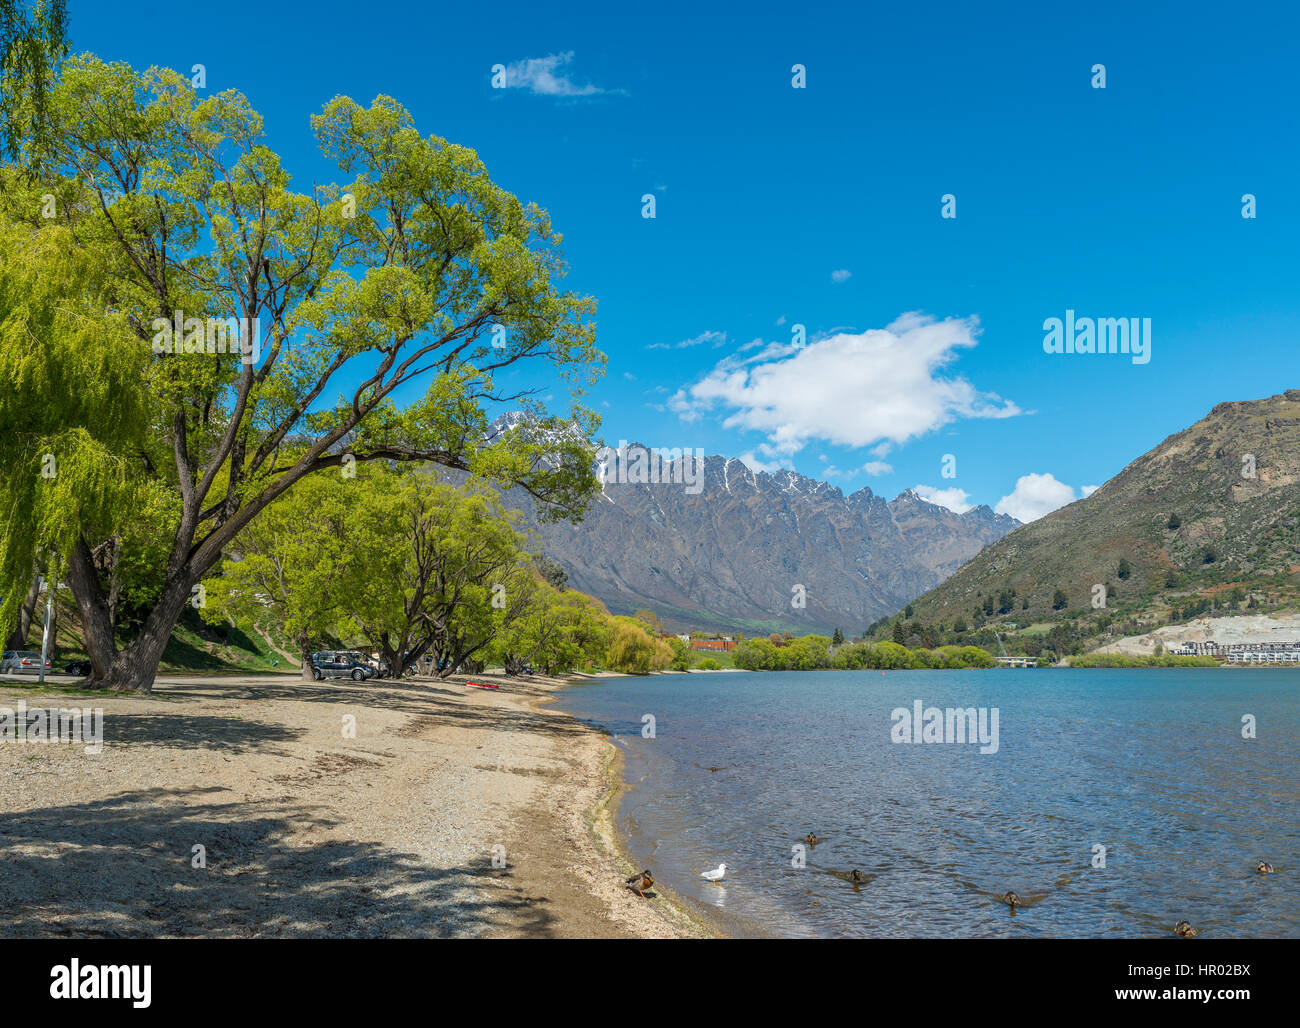 Beach, Lake Wakatipu, The Remarkables mountain range at back, Queenstown, Otago Region, Southland, New Zealand - Stock Image